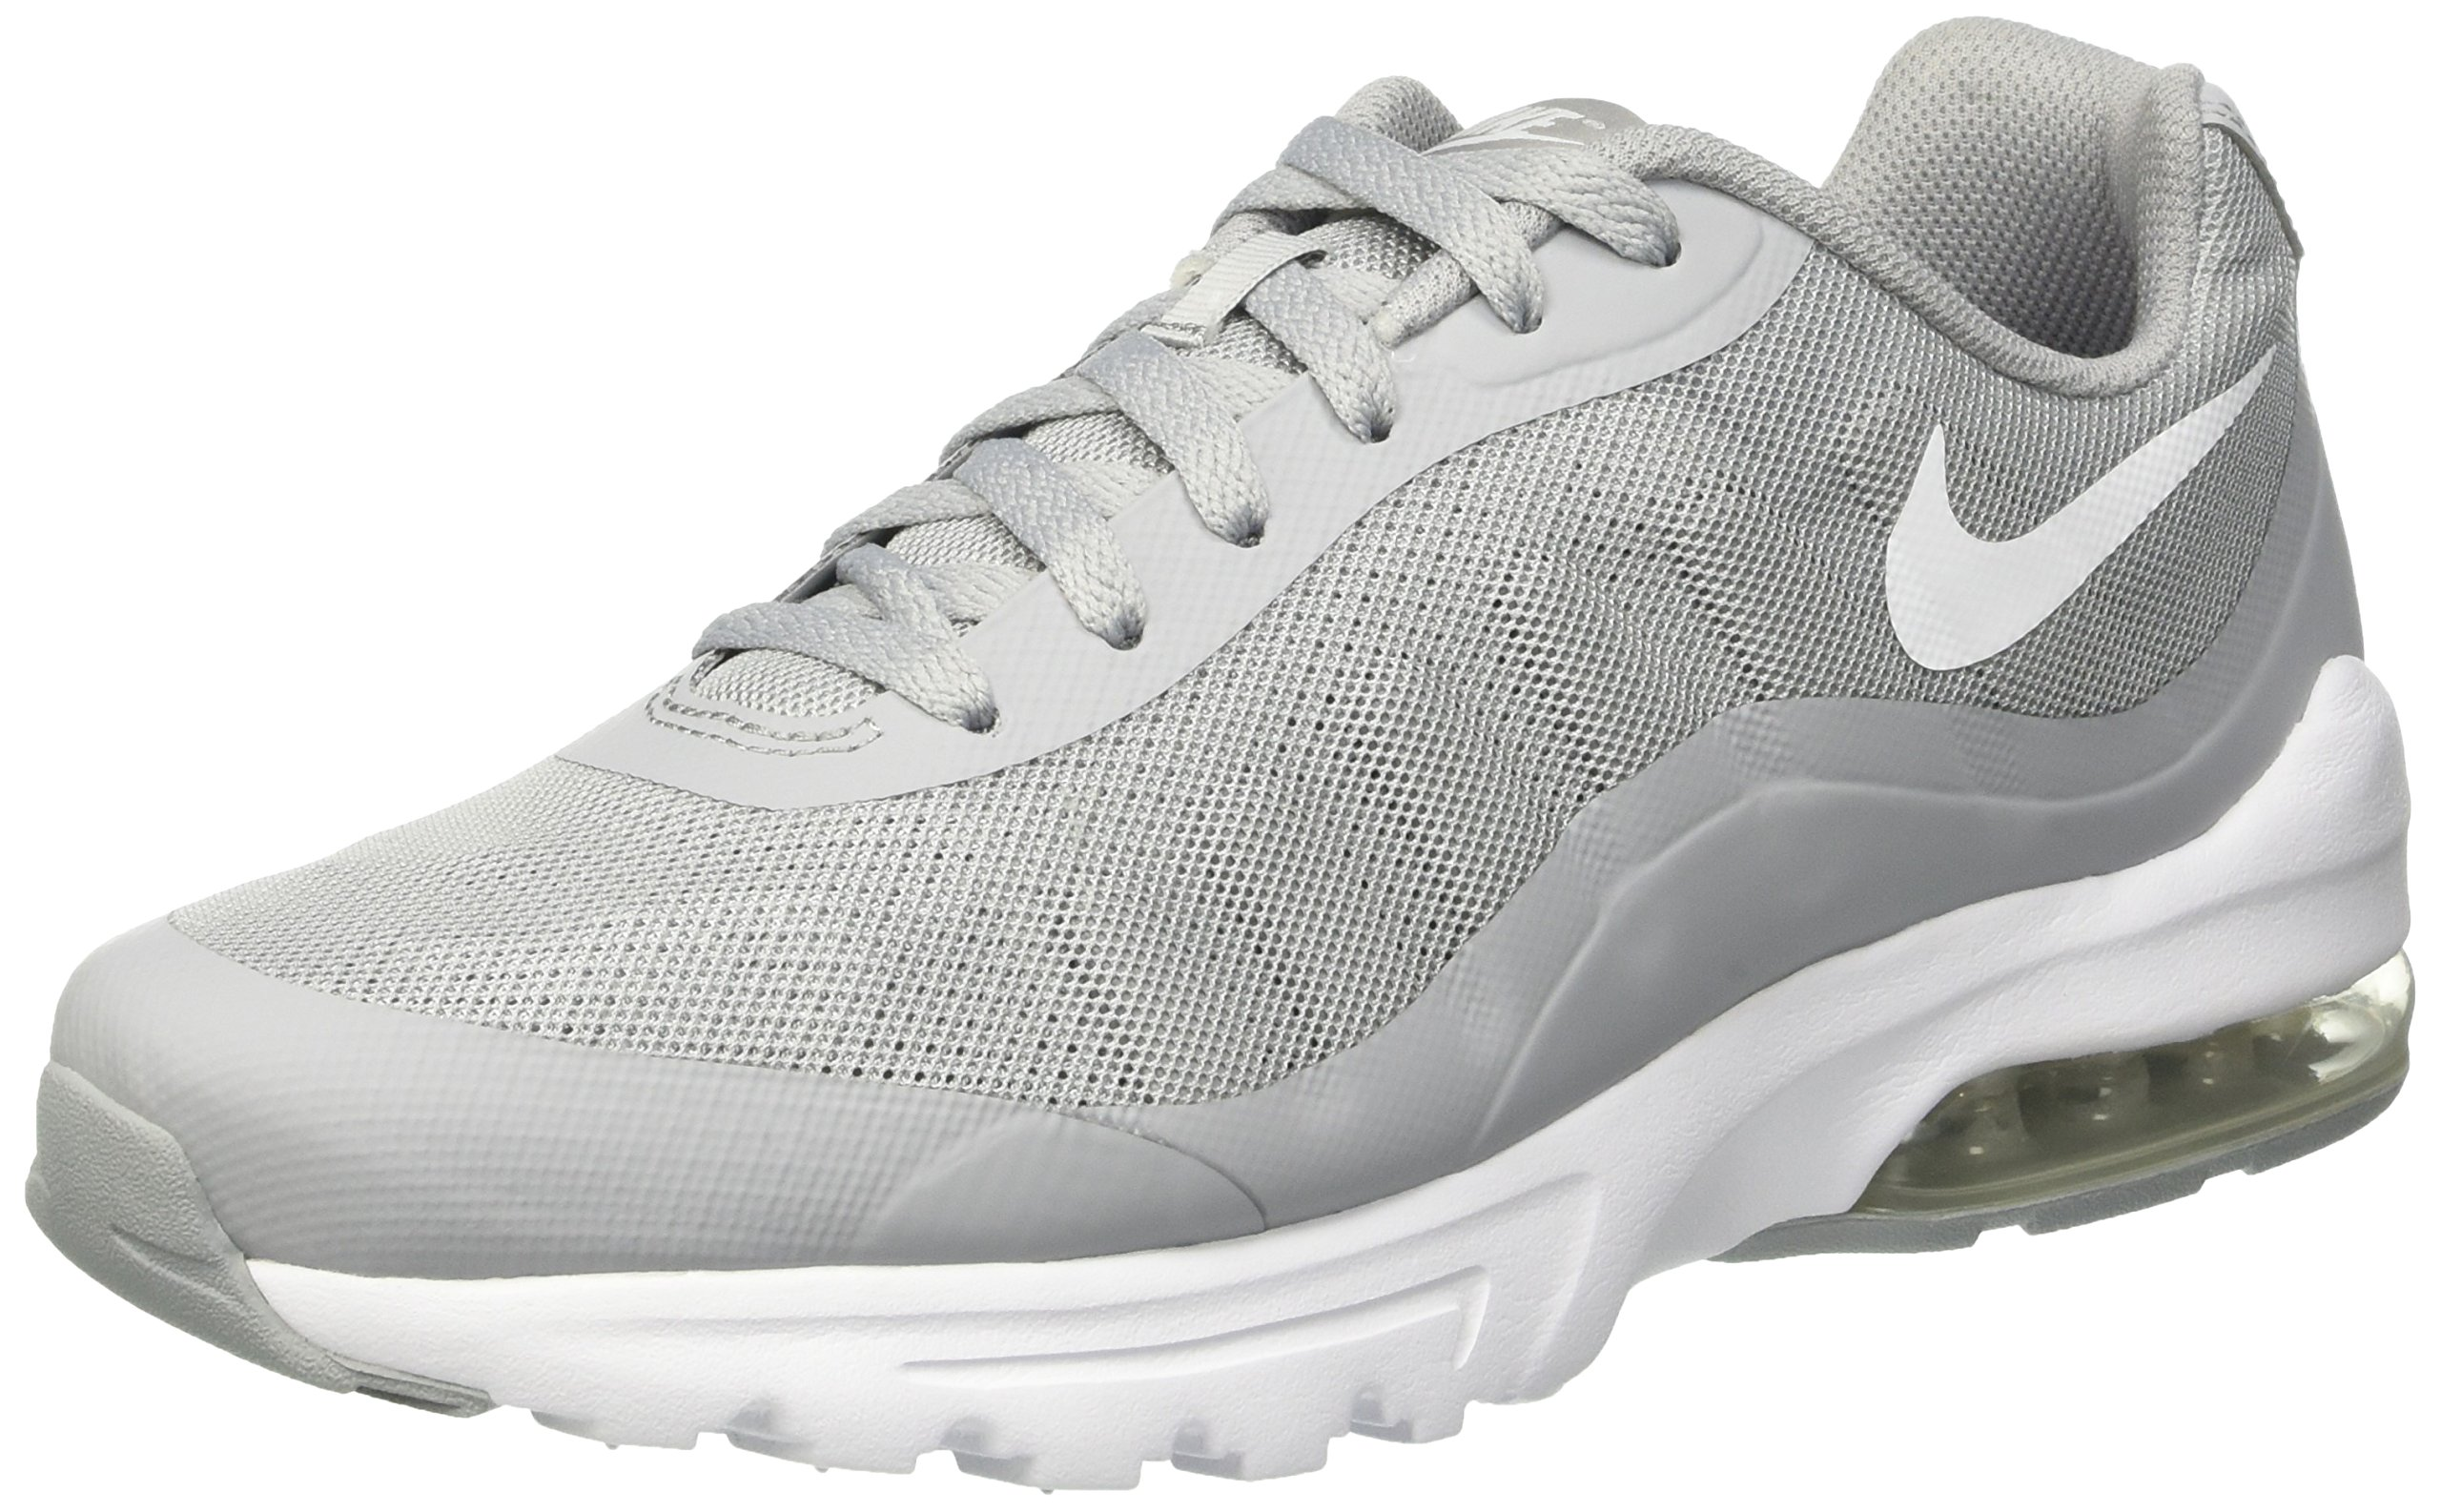 detailed pictures 4da1d 1ae8c Galleon - Nike Men s Air Max Invigor Print Running Shoe, Wolf Grey White,  11.5 D(M) US